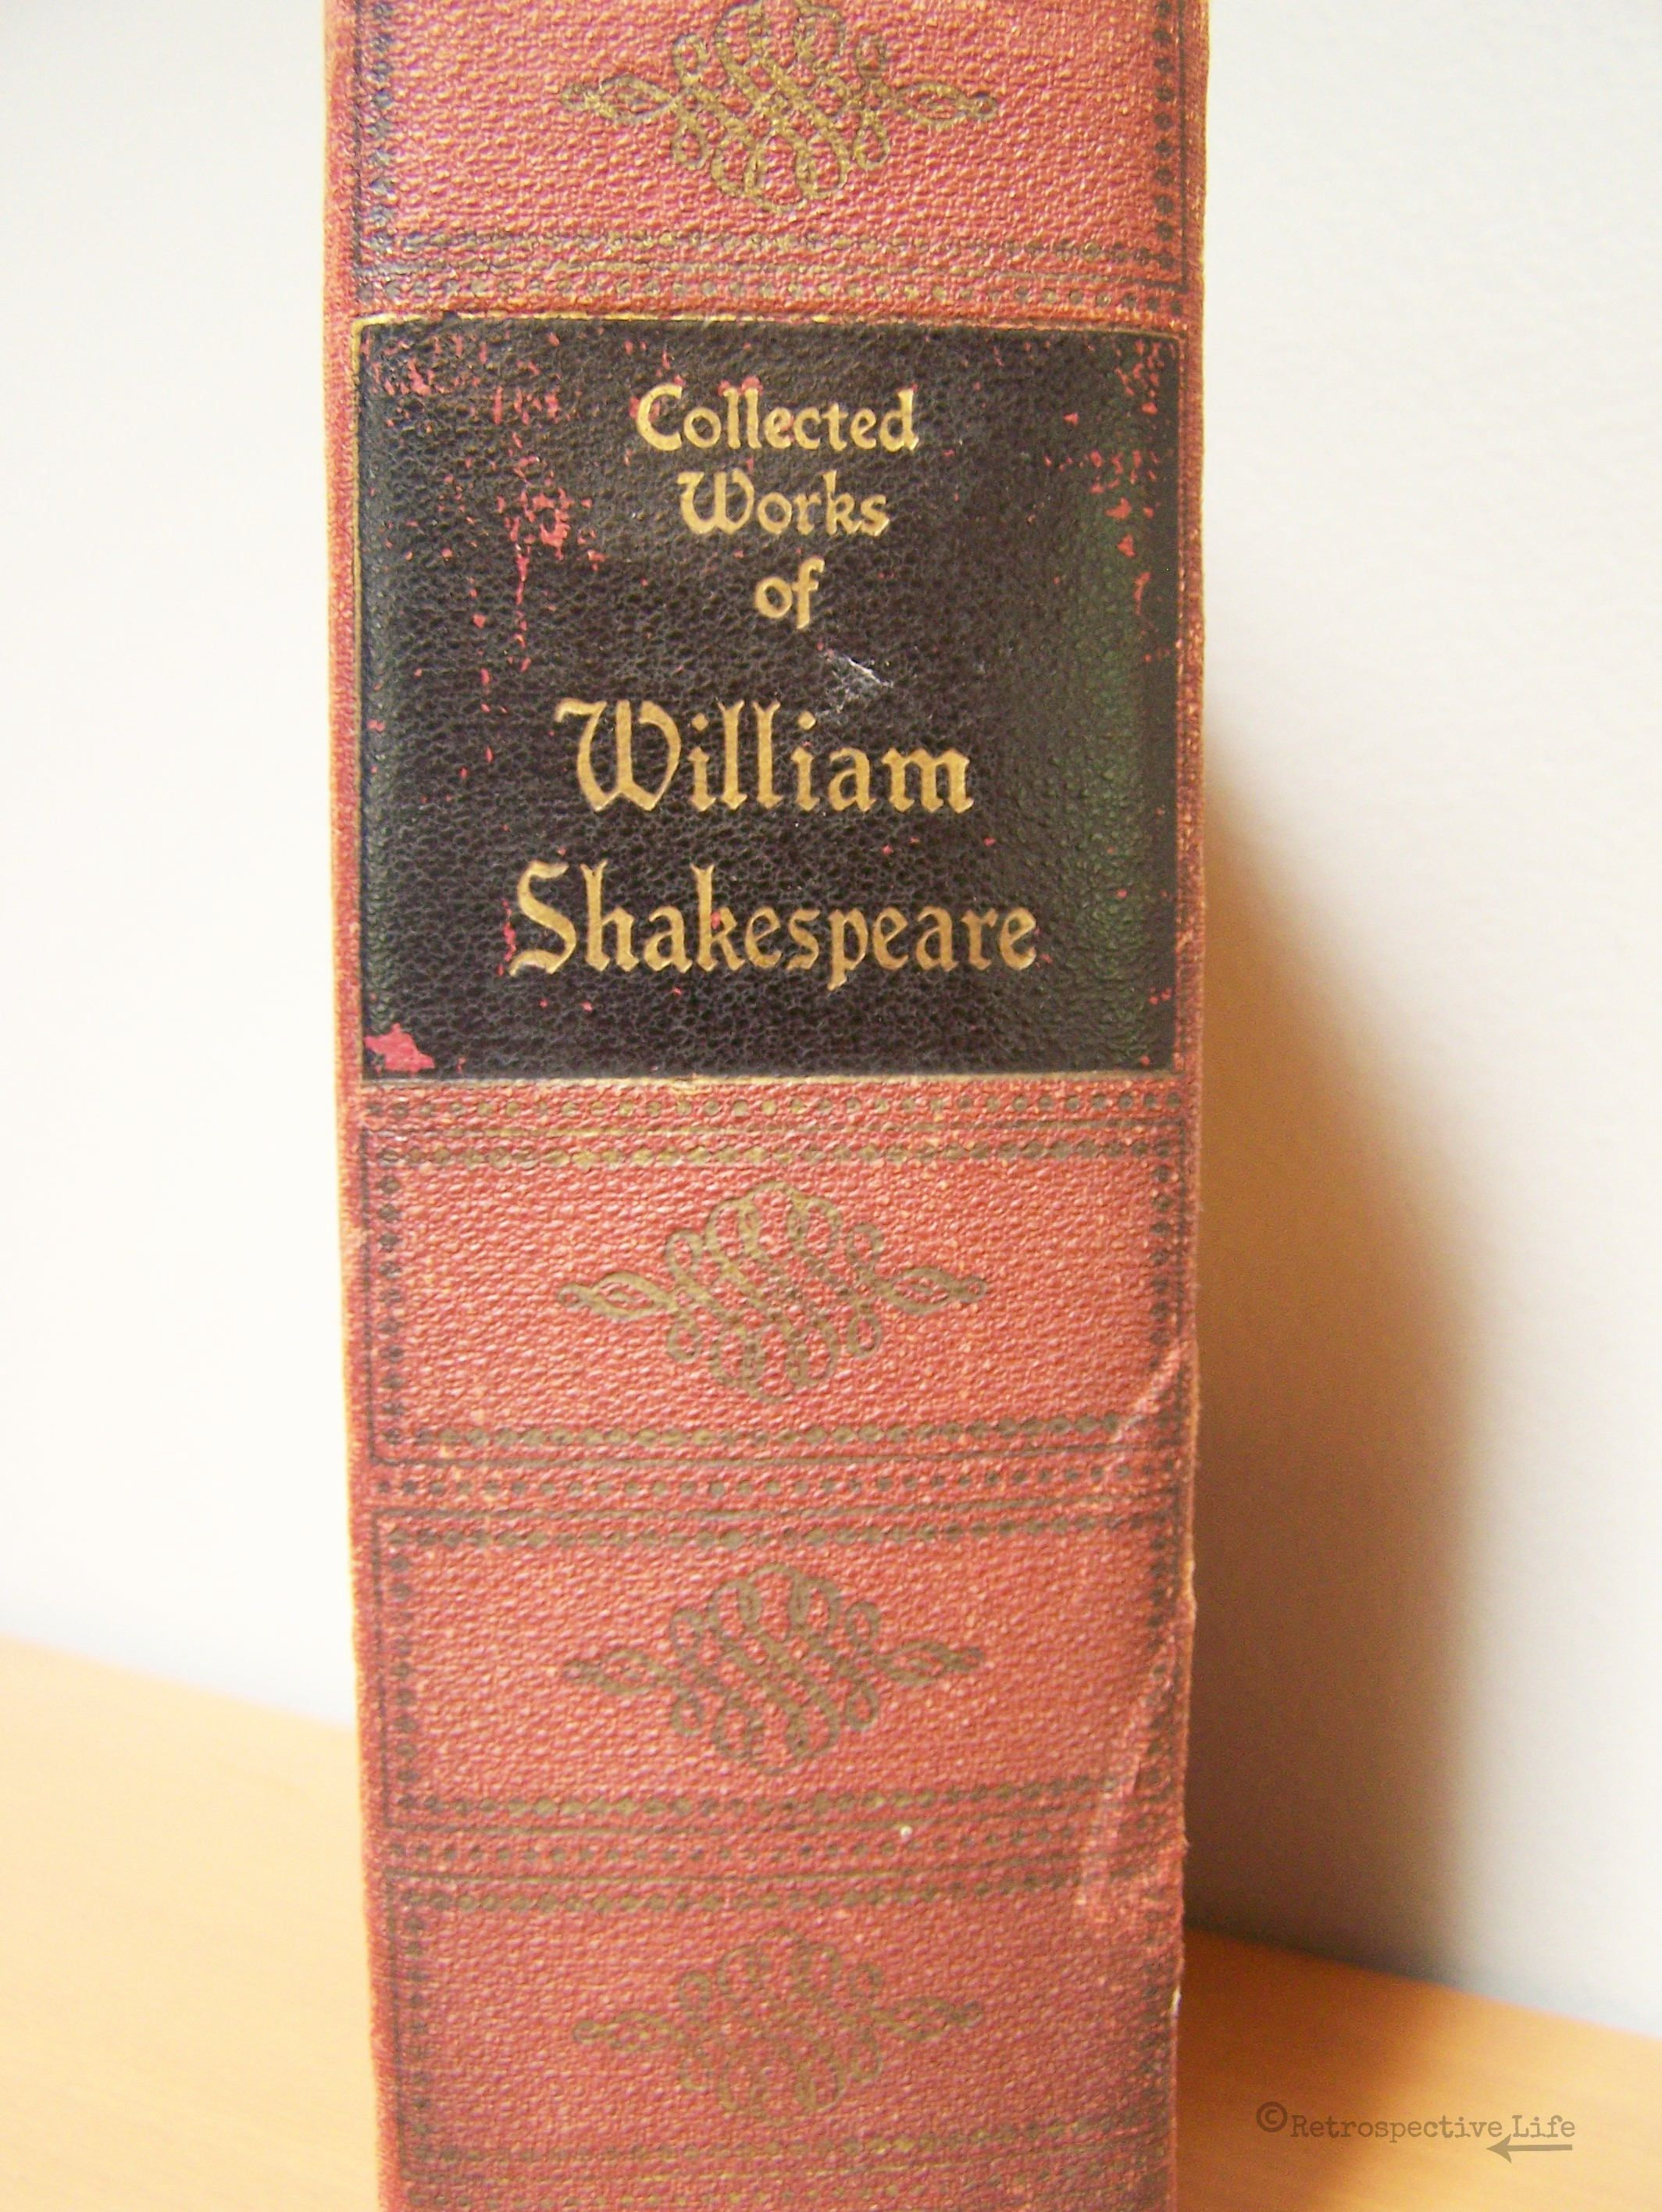 Antique Book 1937 Hardcover Edition Collected Works Of William Shakespeare Complete Works Of William Shakespeare Antique Books Vintage Books Hardcover Book